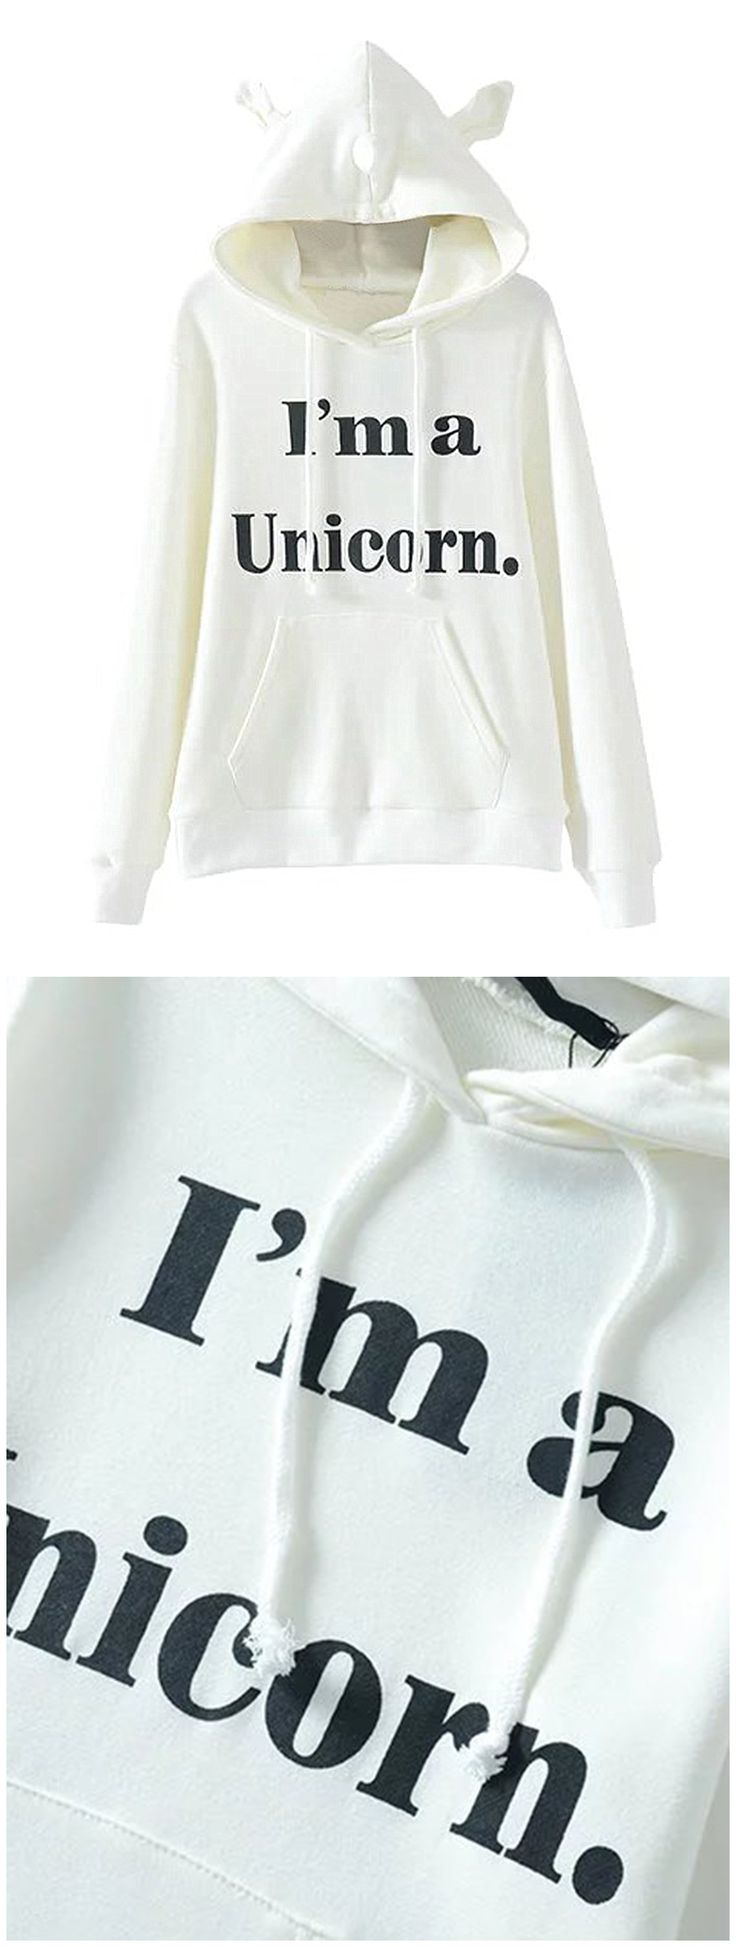 Clothink Women White Long Sleeve Letter Print Unicorn Hoodies Sweatshirt